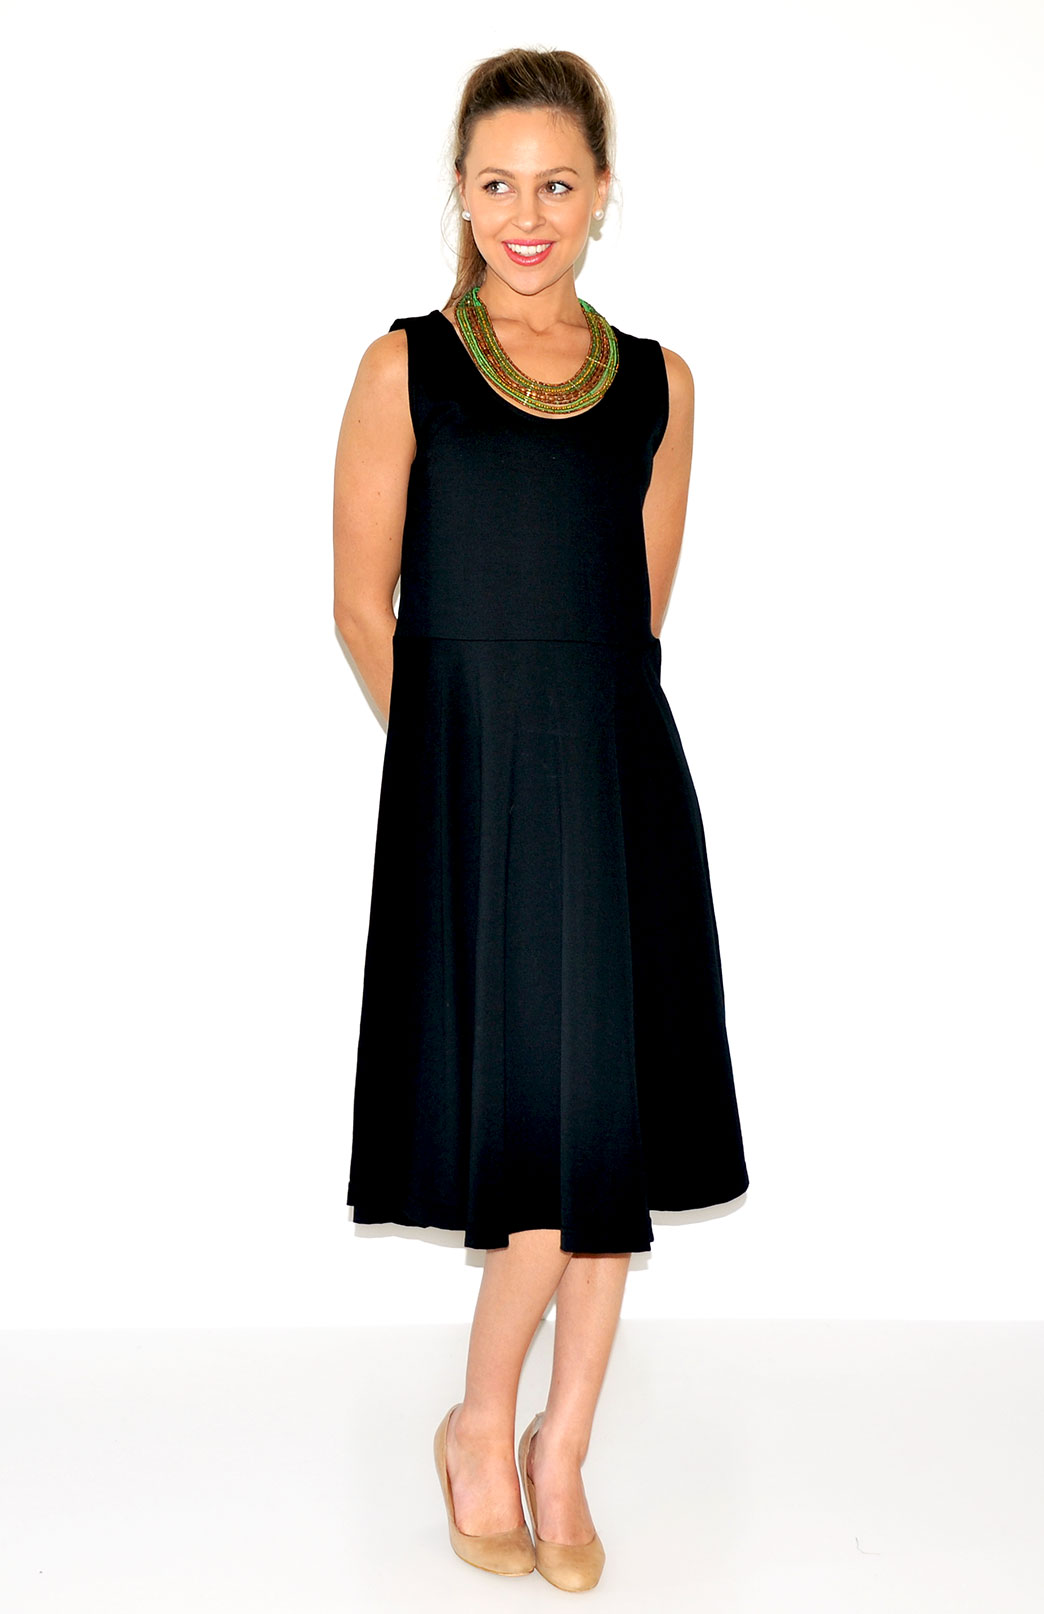 Jackie Dress - Sleeveless - Women's Black Sleeveless Jackie Dress with Waist Seam and Flared Skirt - Smitten Merino Tasmania Australia